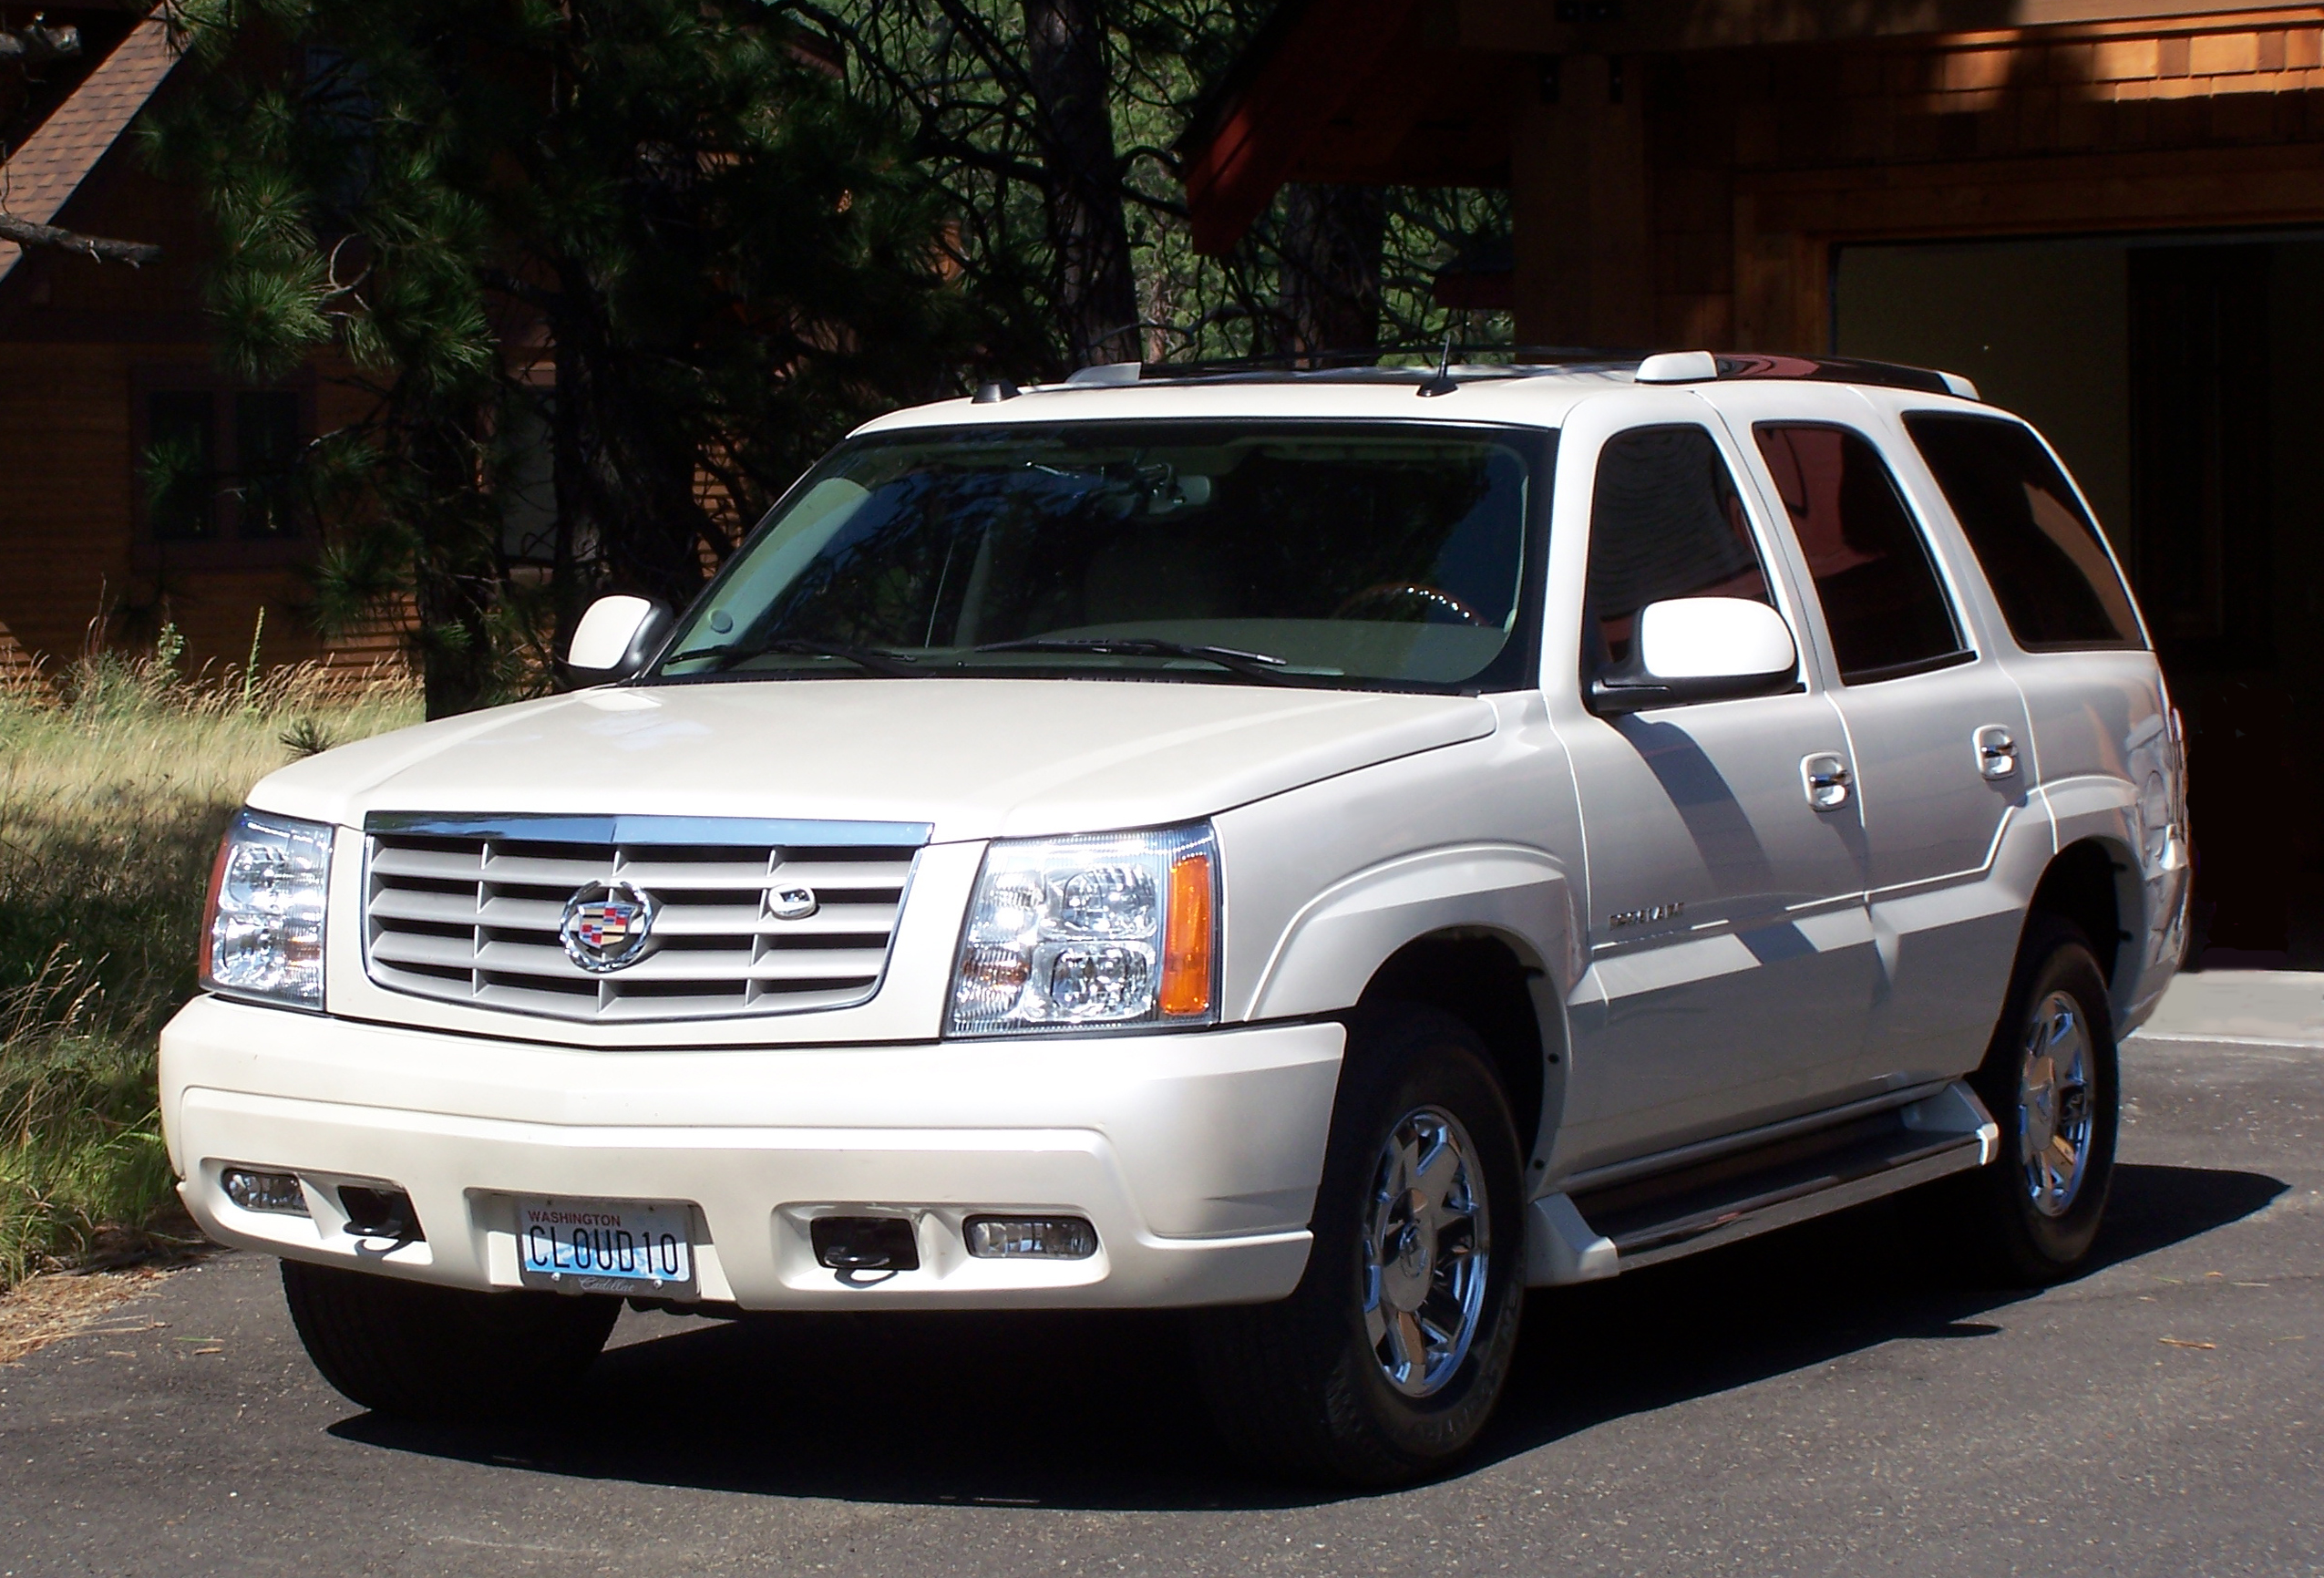 ent suv of on esv for download cadillac s escalade car update blog image nav rear item sale